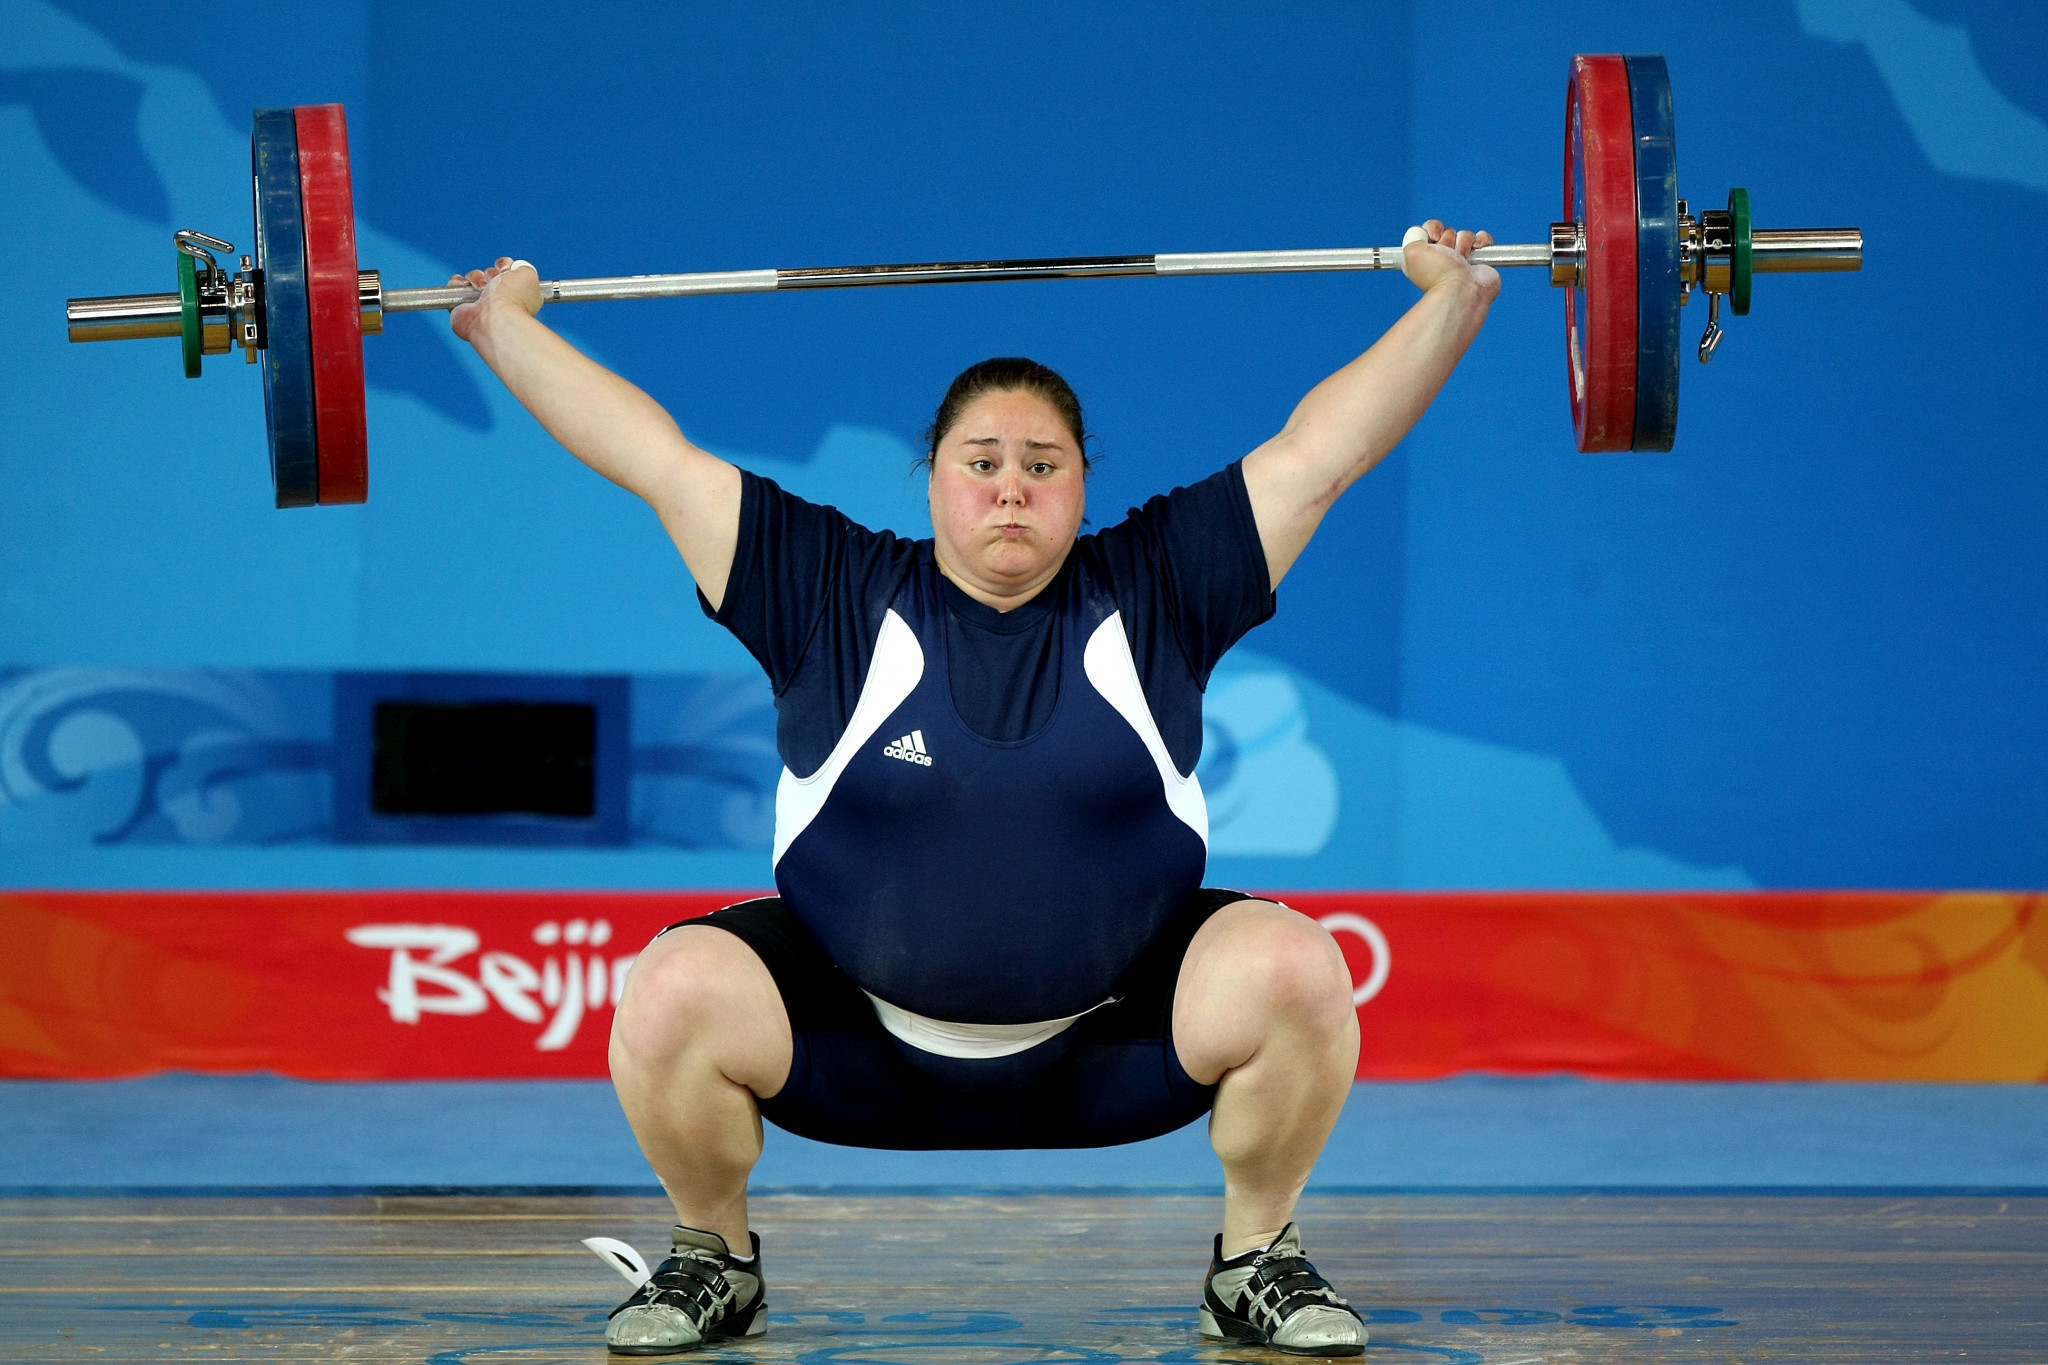 The last female medallist was Cheryl Haworth, who won super-heavyweight bronze in 2005 ©Getty Images